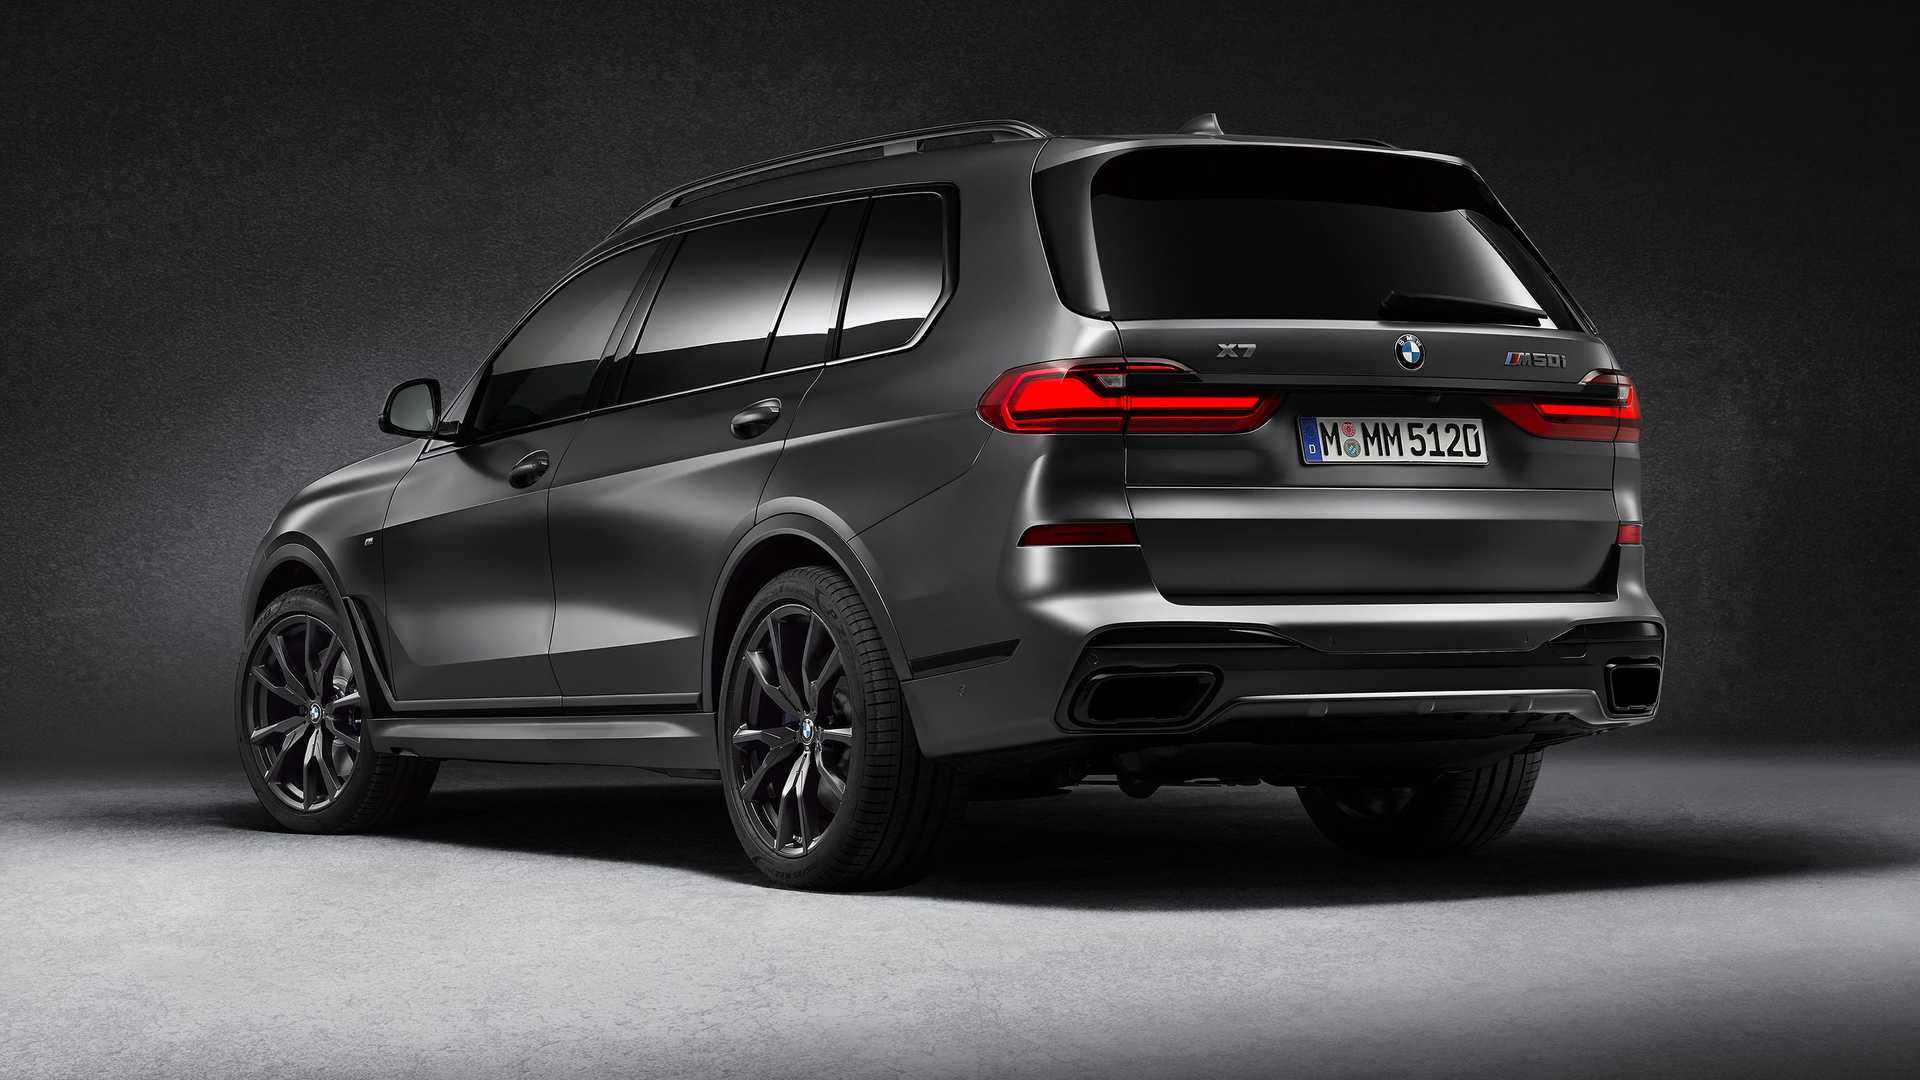 2021-bmw-x7-dark-shadow-edition-rear-three-quarters.jpg